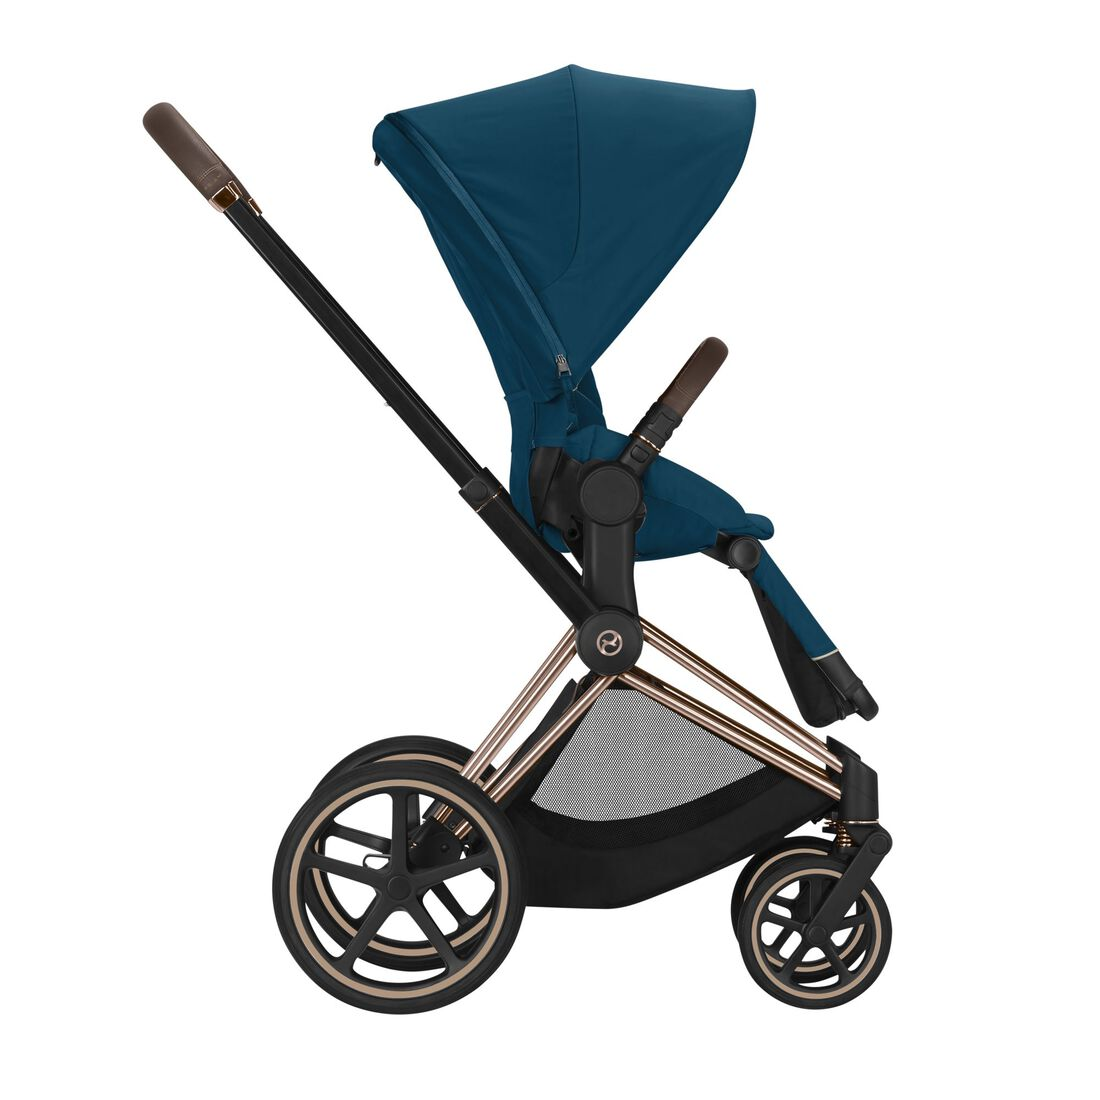 CYBEX Priam Seat Pack - Mountain Blue in Mountain Blue large image number 3